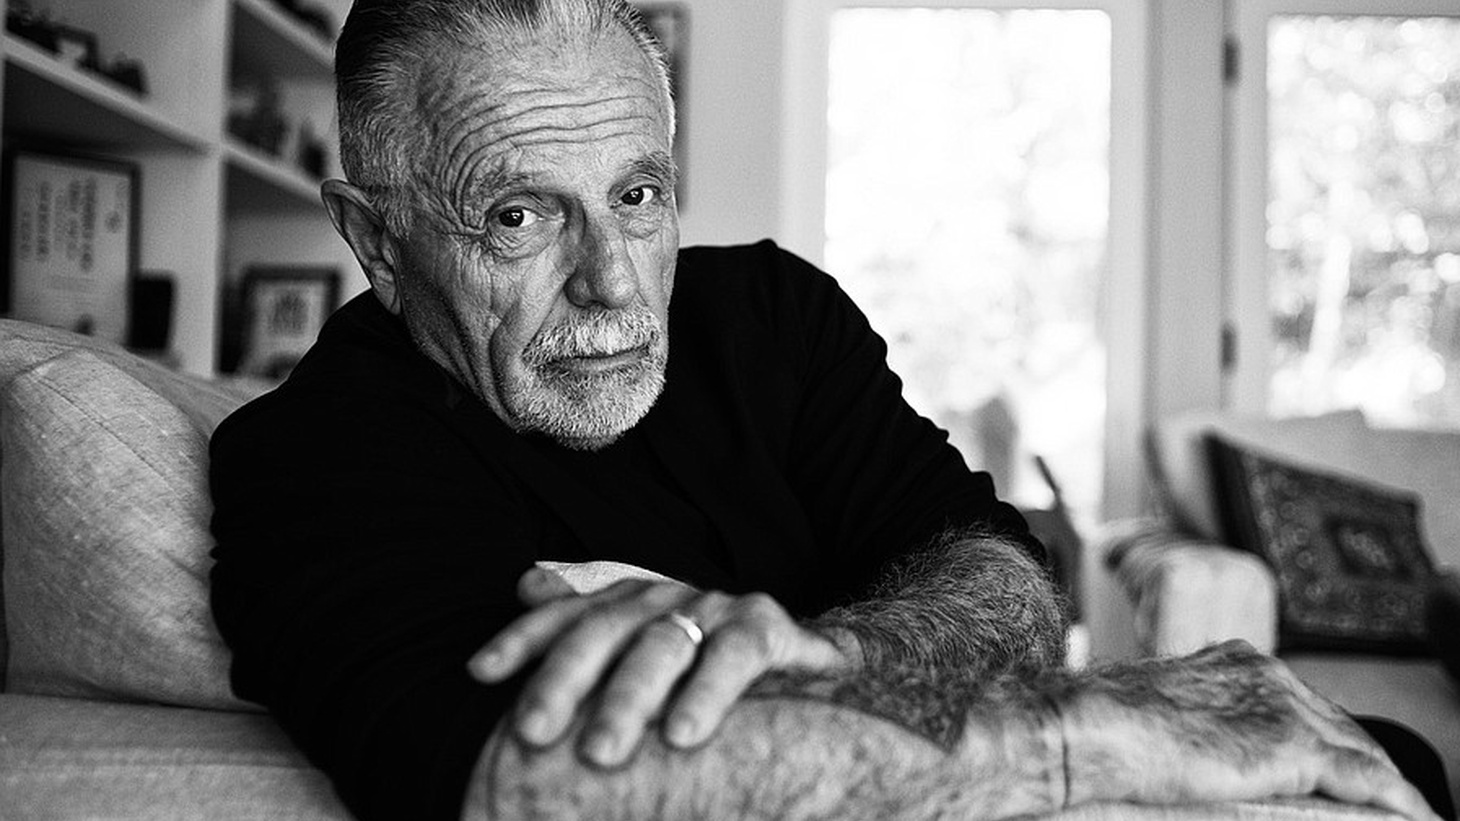 George Christie led the Ventura chapter of the Hells Angels Motorcycle Club for more than 30 years, after founding it in 1978. Many people feared him. Some tried to kill him.